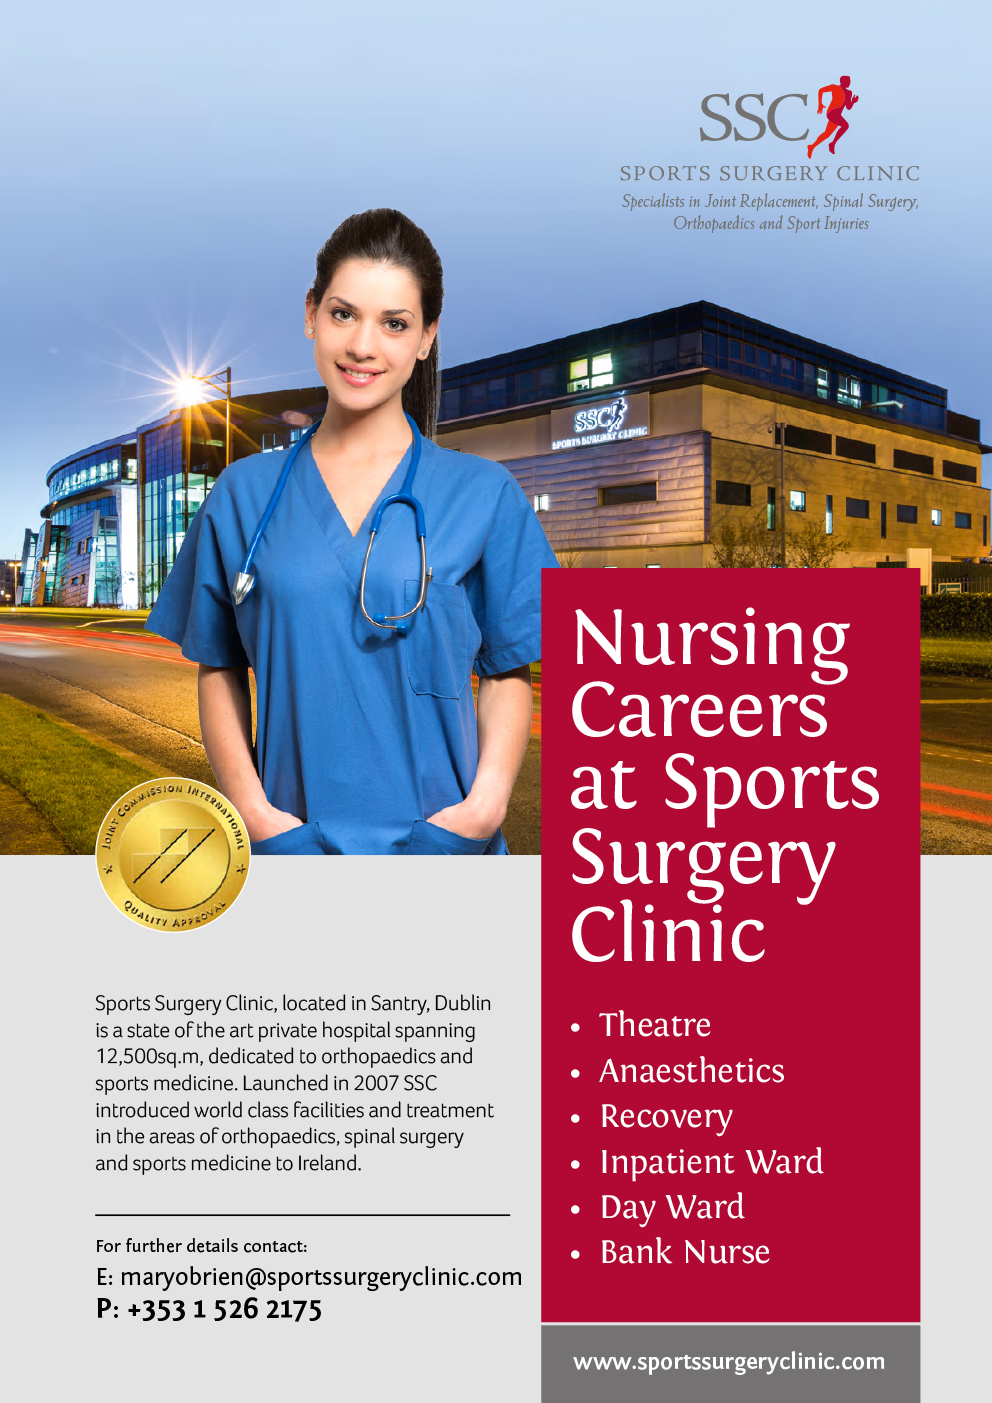 Nurses at Sports Surgery Clinic Santry